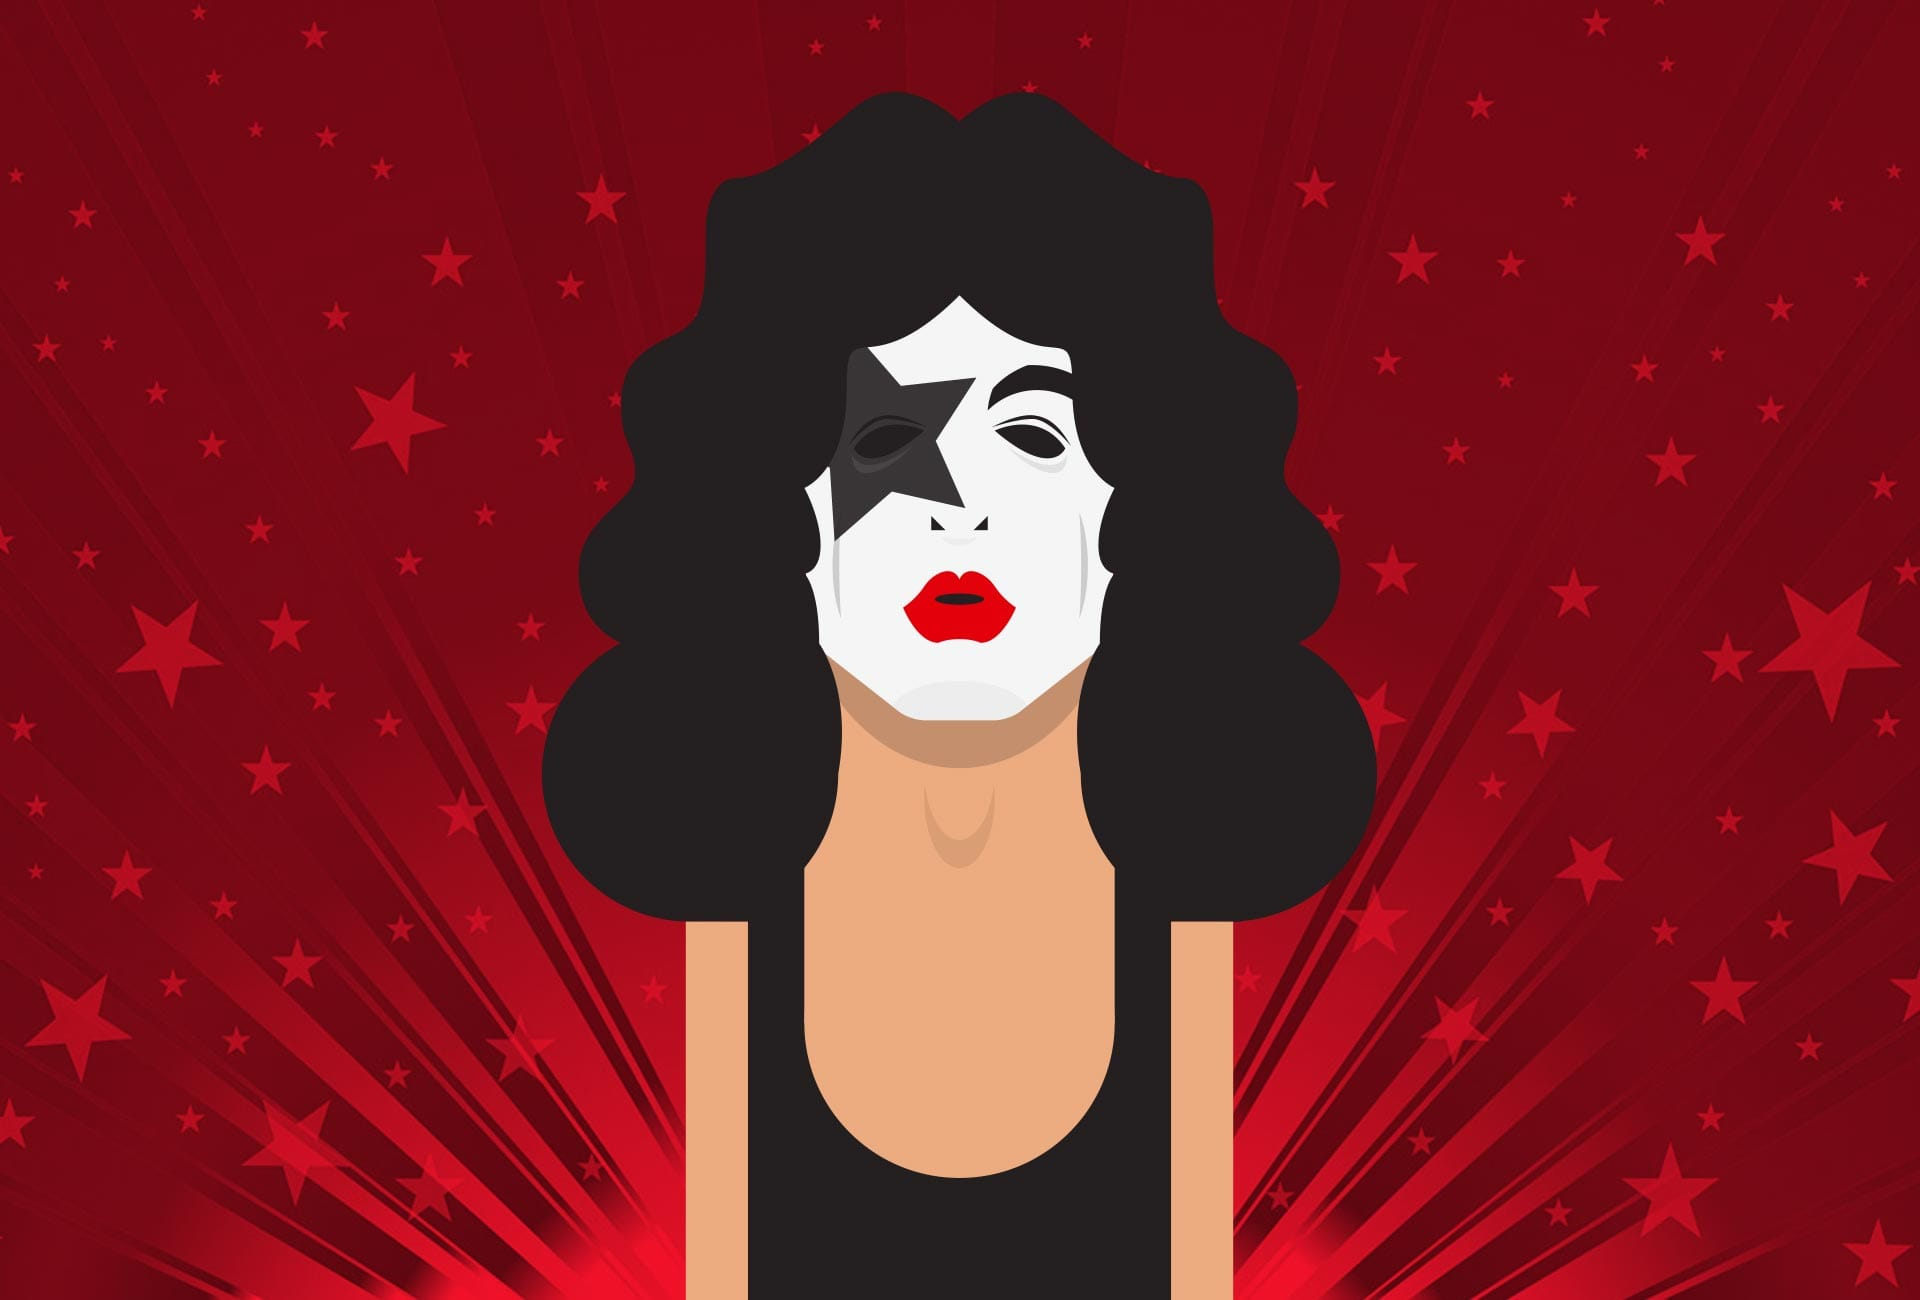 Illustration: Portraits - Paul Stanley